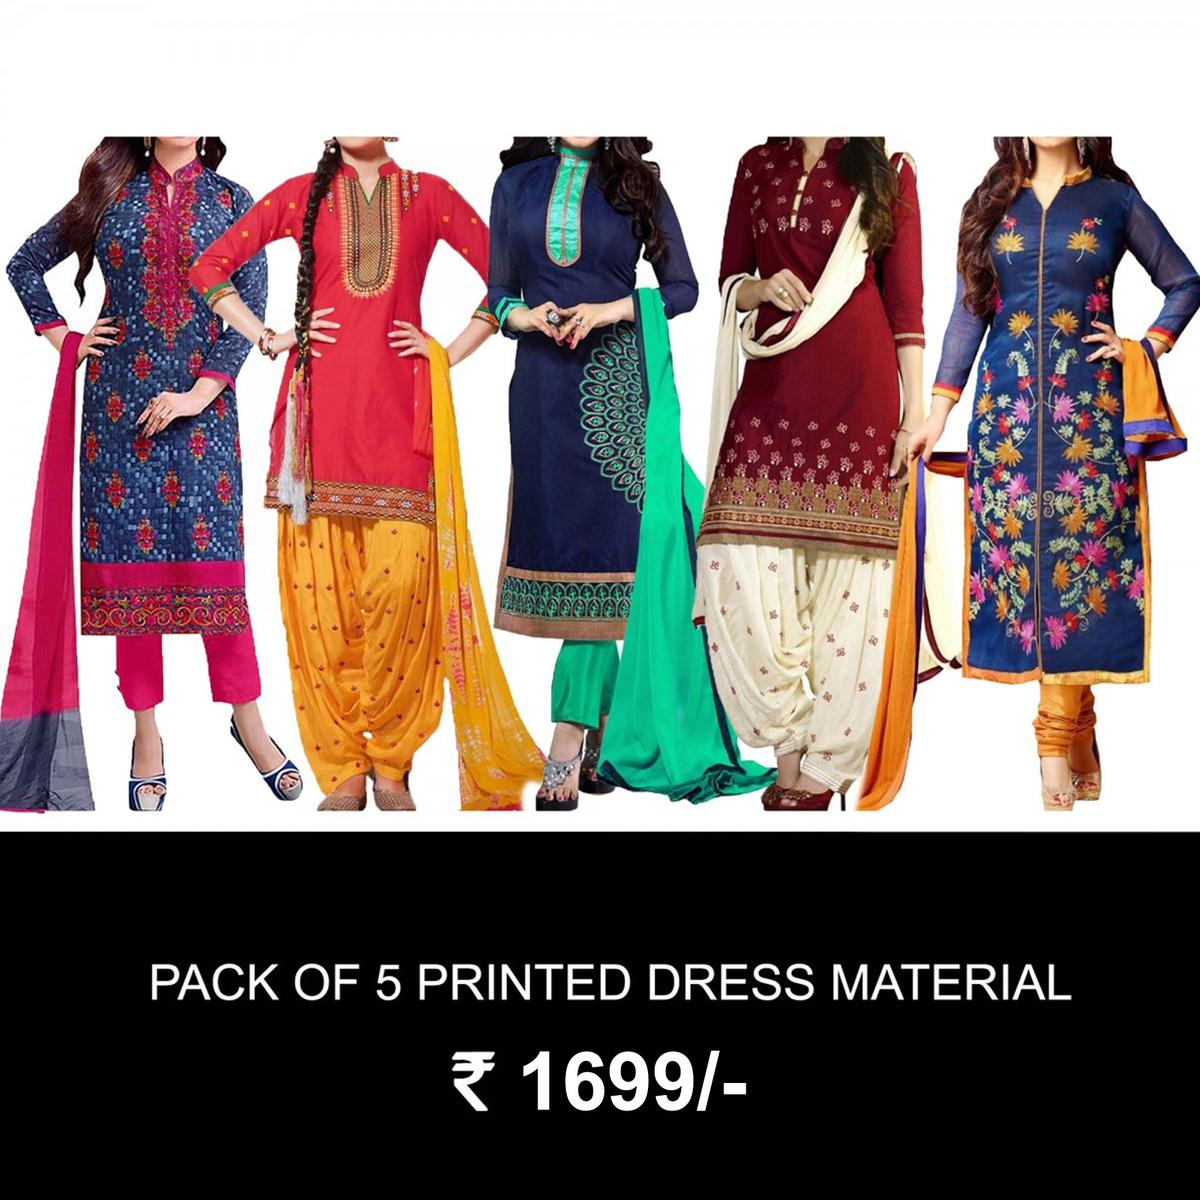 558b7dc5d4 Buy Pack of 5 Printed Dress Material for womens online India, Best Prices,  Reviews - Peachmode